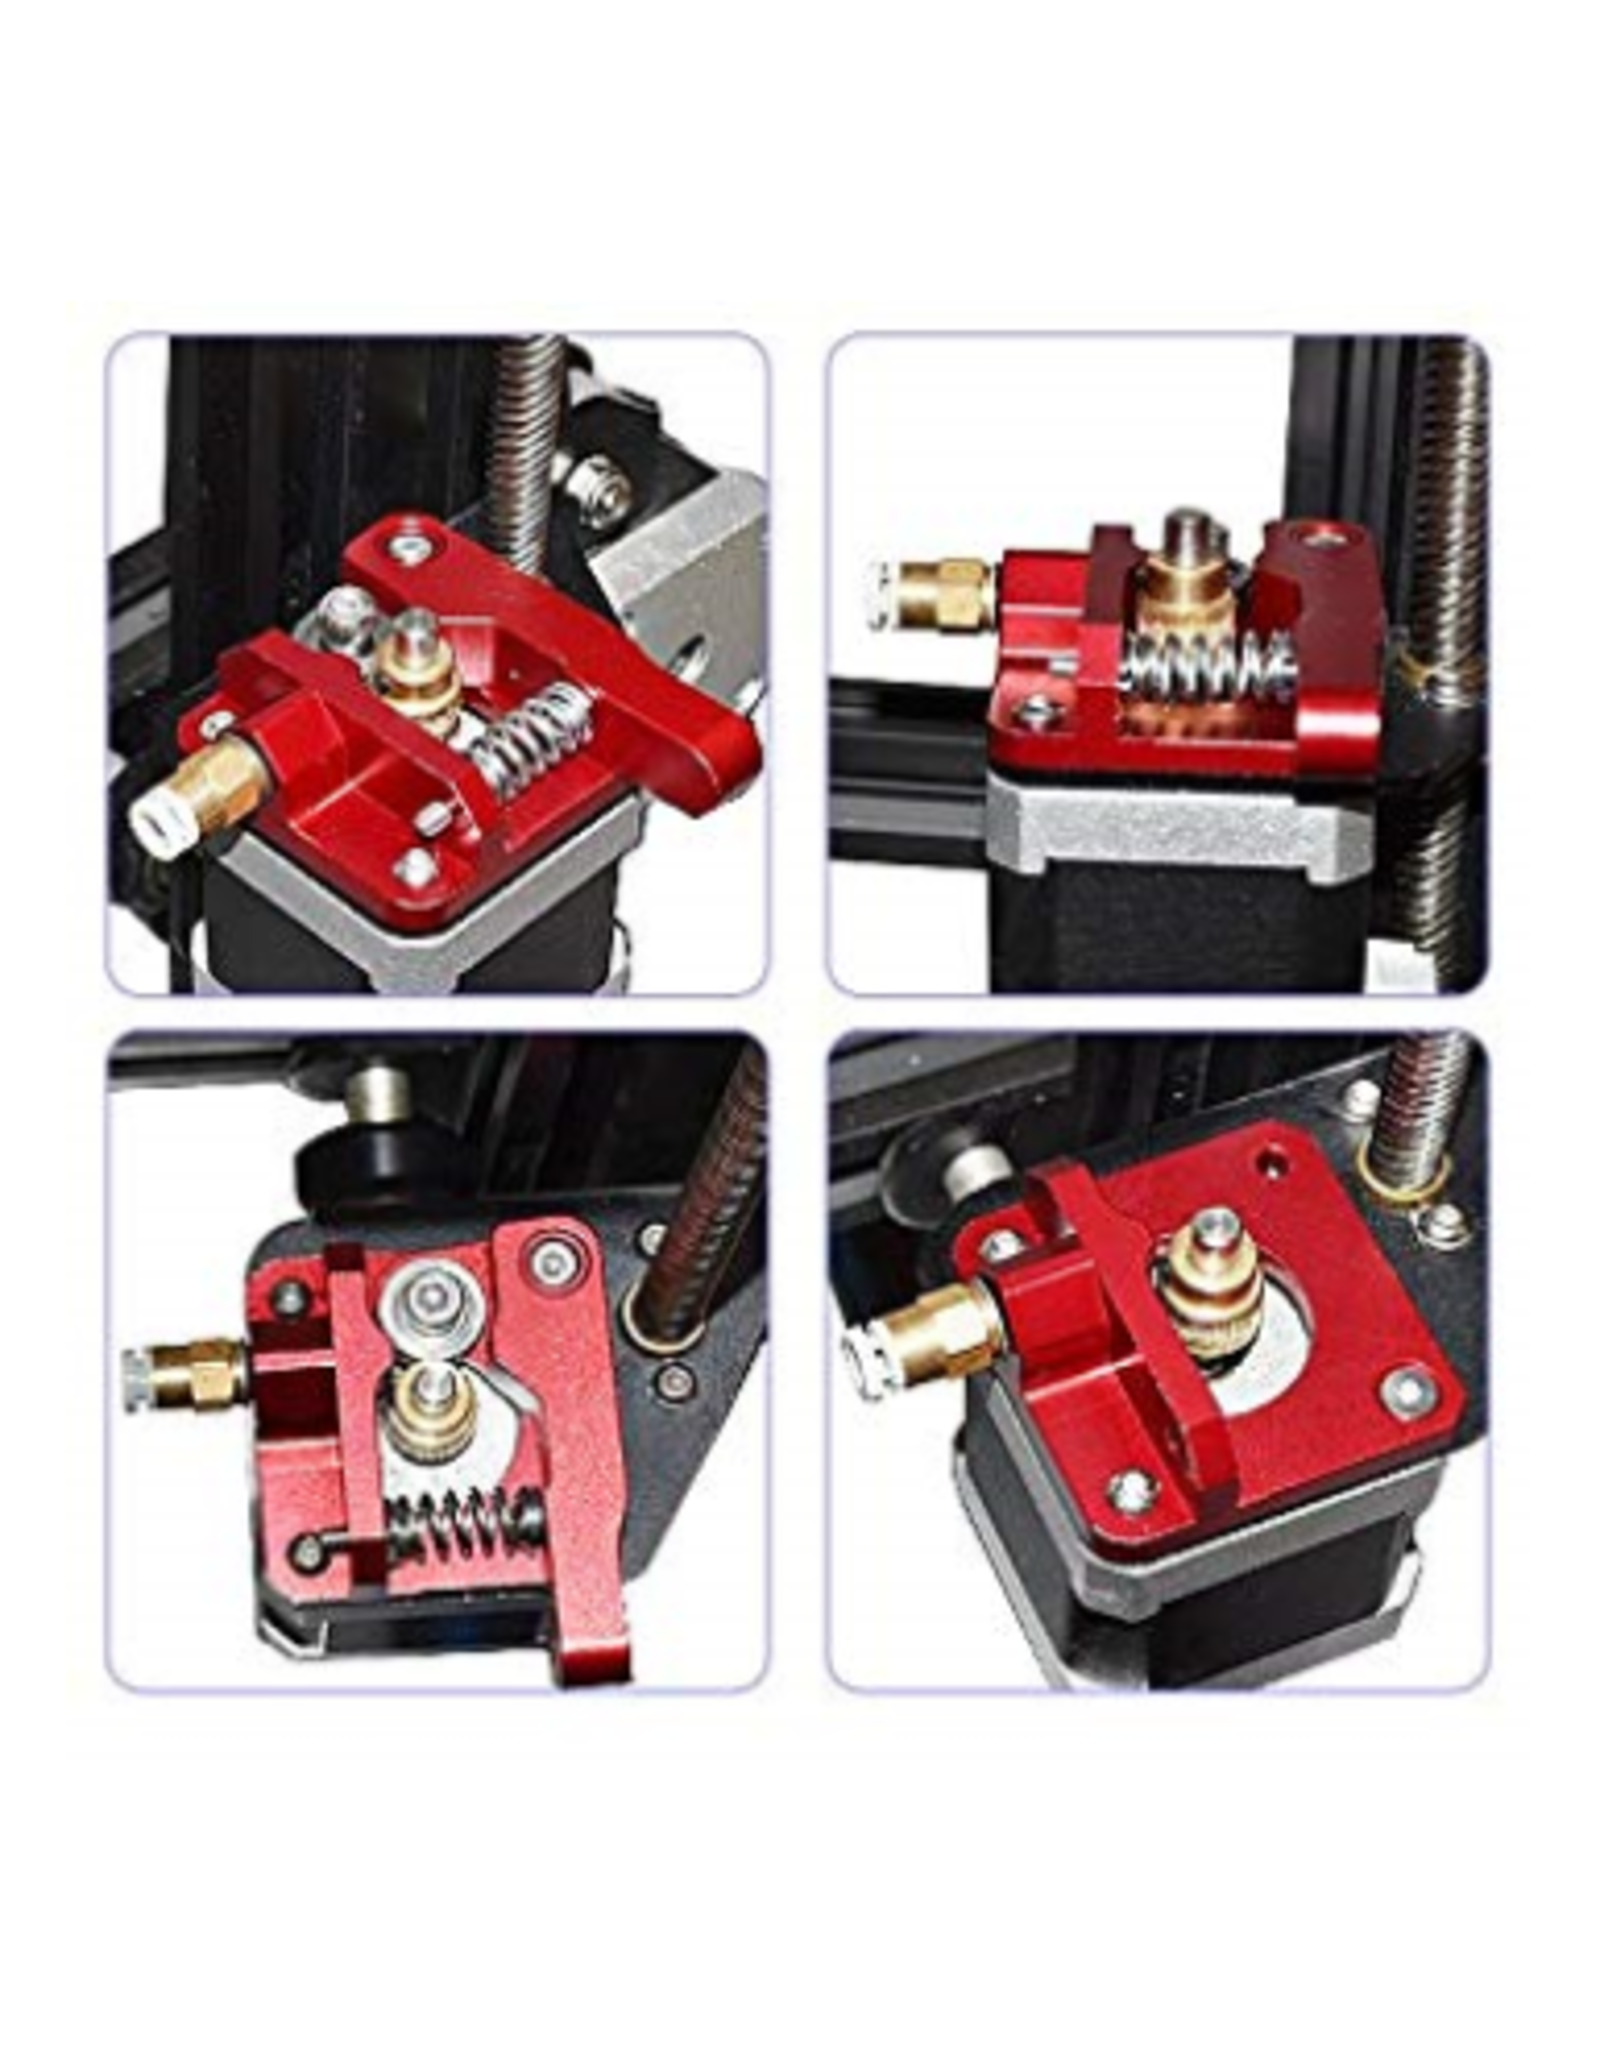 Creality/Ender MK8 /CR10 Red Metal Extruder Kit